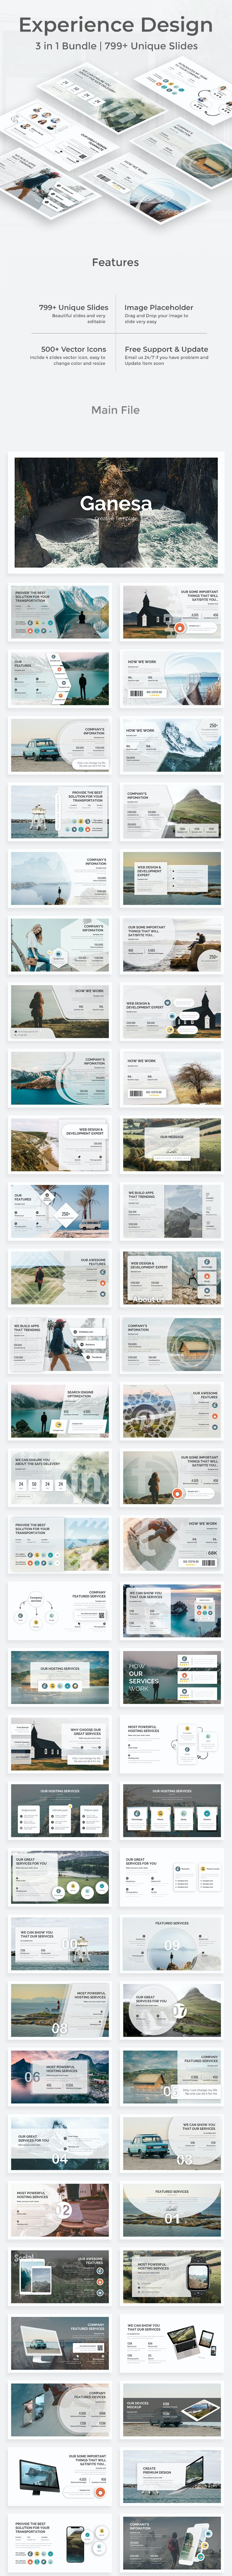 3 in 1 Bundle Experience Design Bundle Google Slide Template - Google Slides Presentation Templates